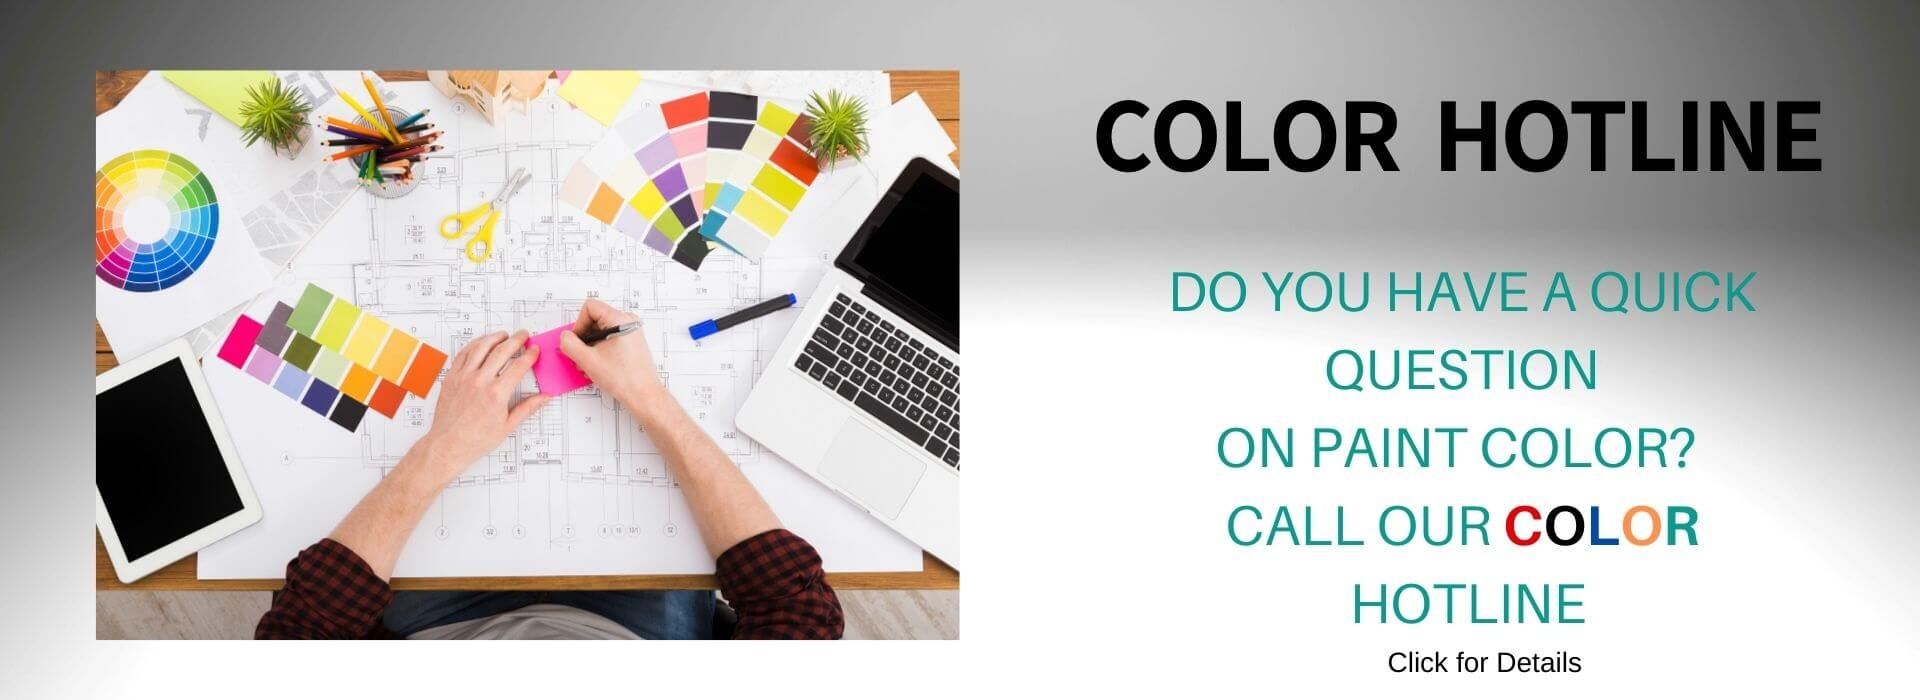 Color Hotline